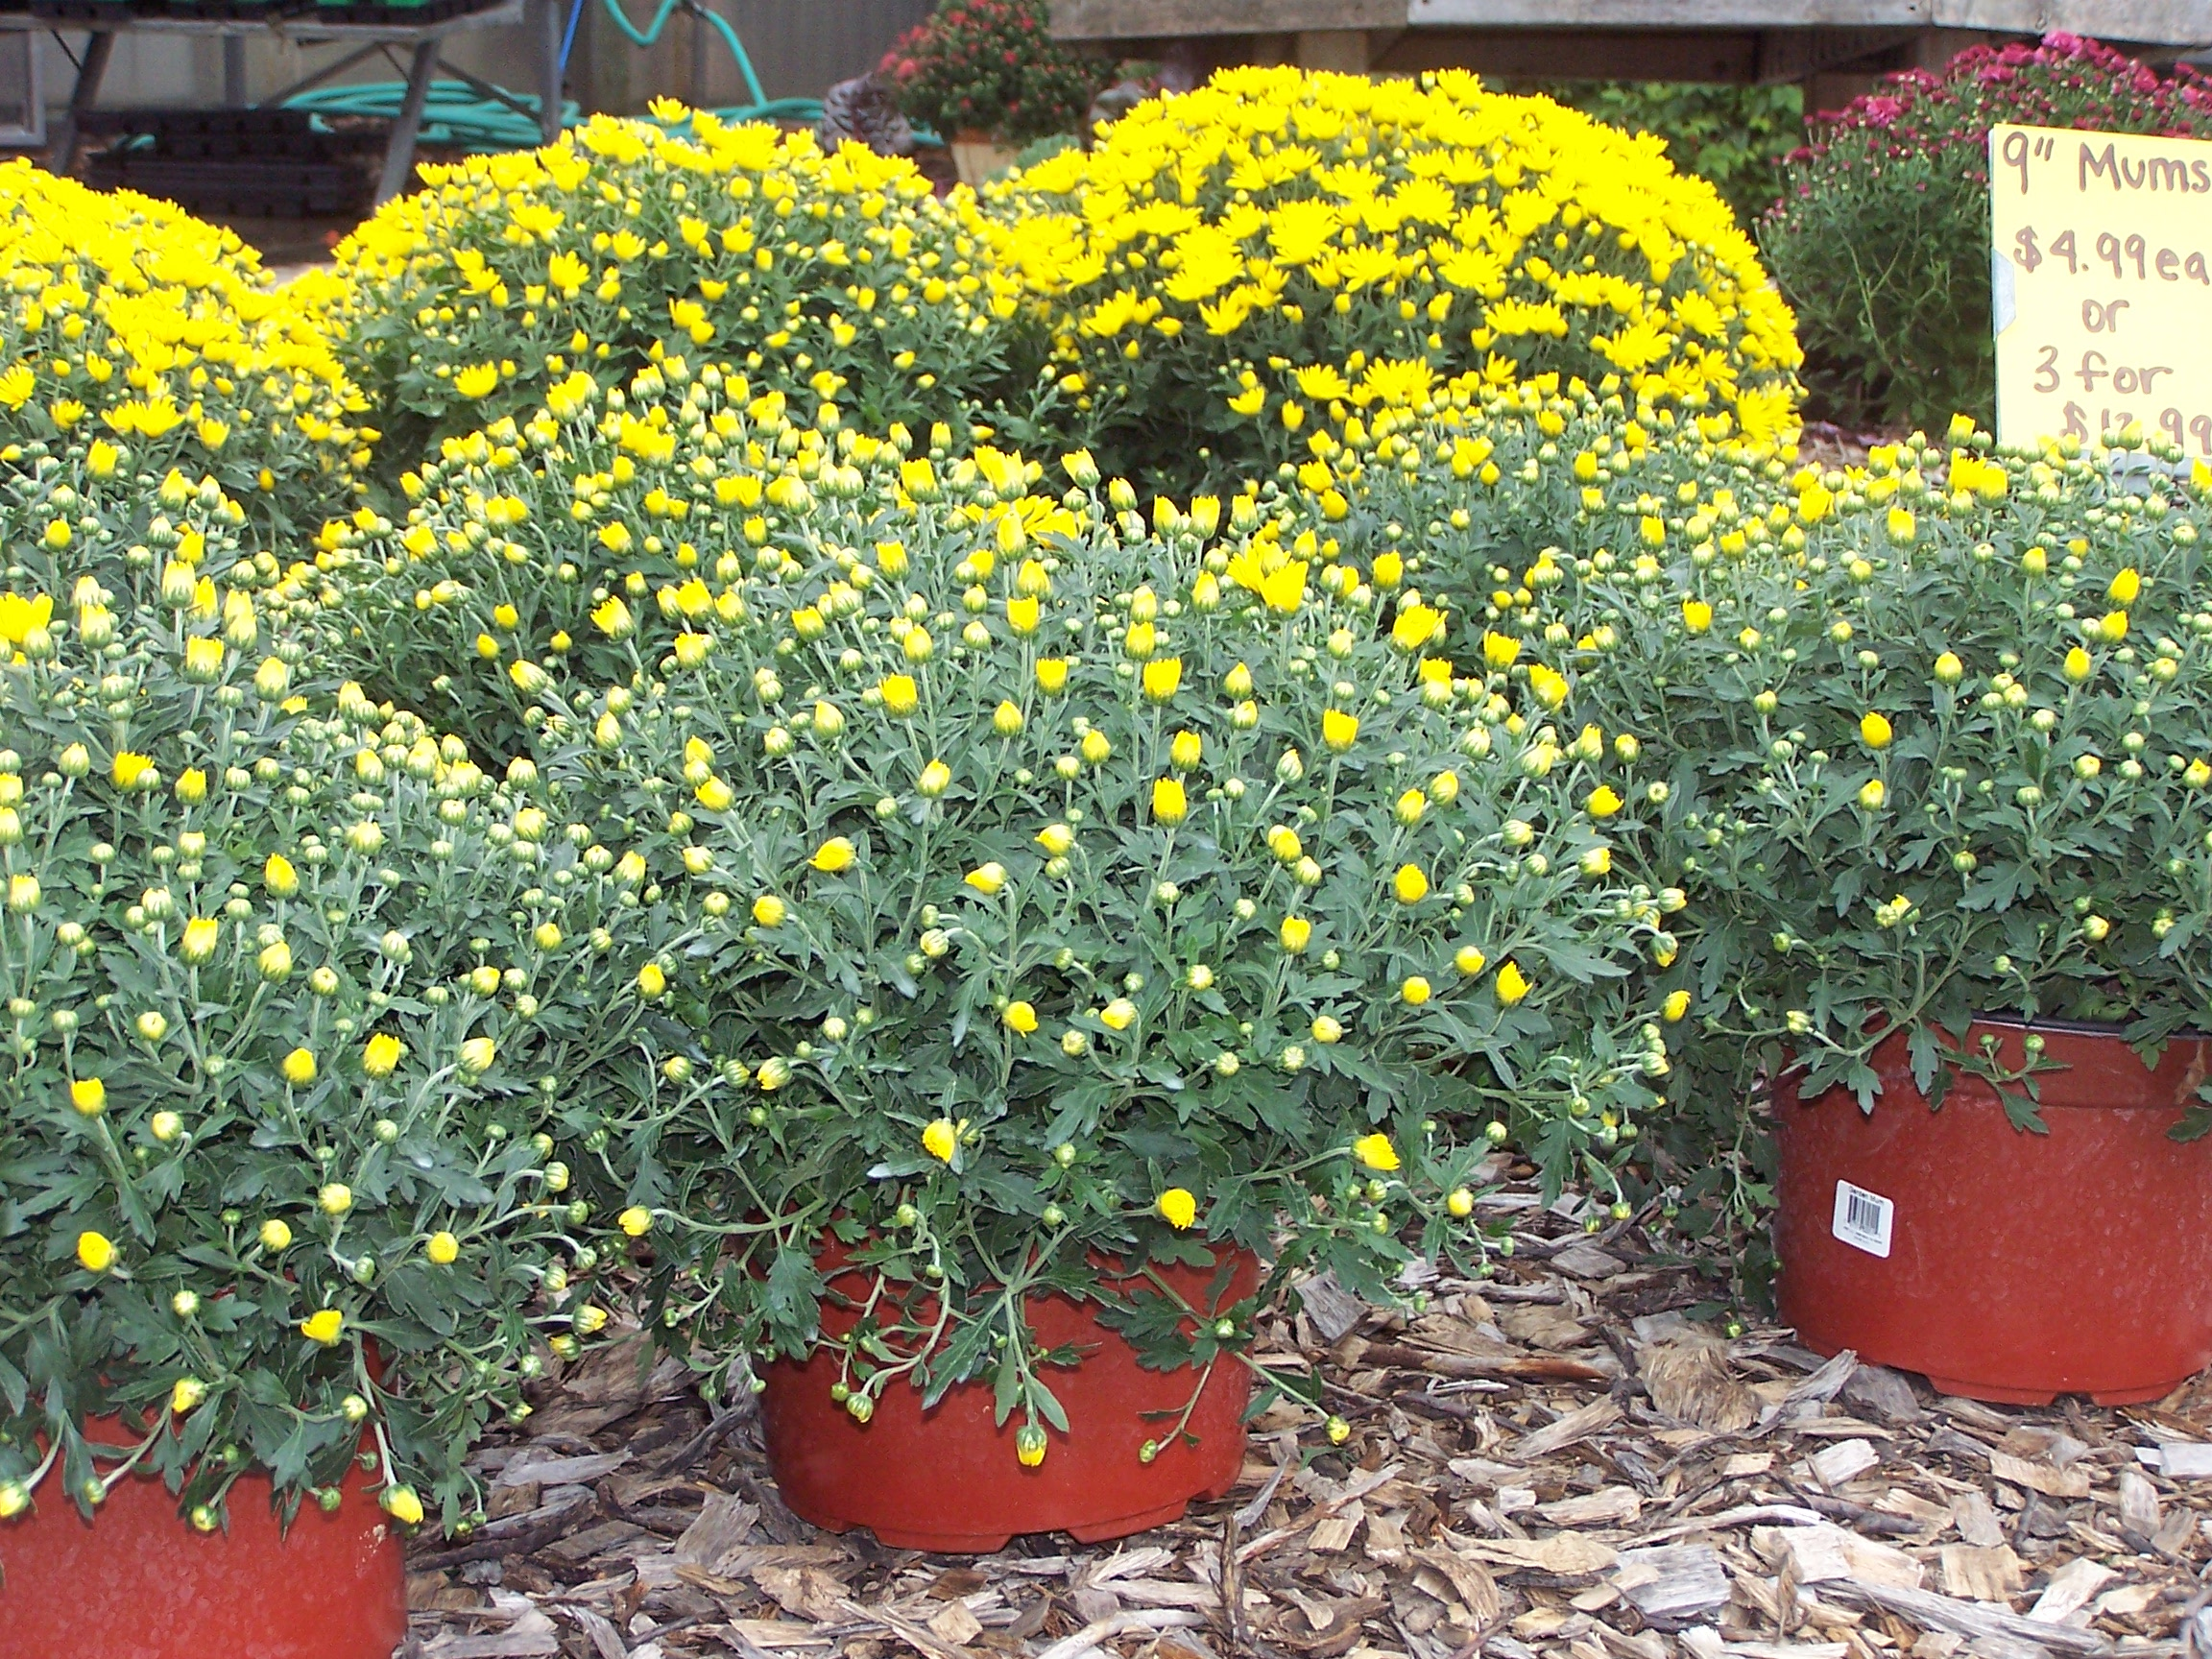 White Hardy Mums Hardy Mums Blog Are Mums Perennials Ohio Are Mums Perennial Flowers houzz-03 Are Mums Perennials